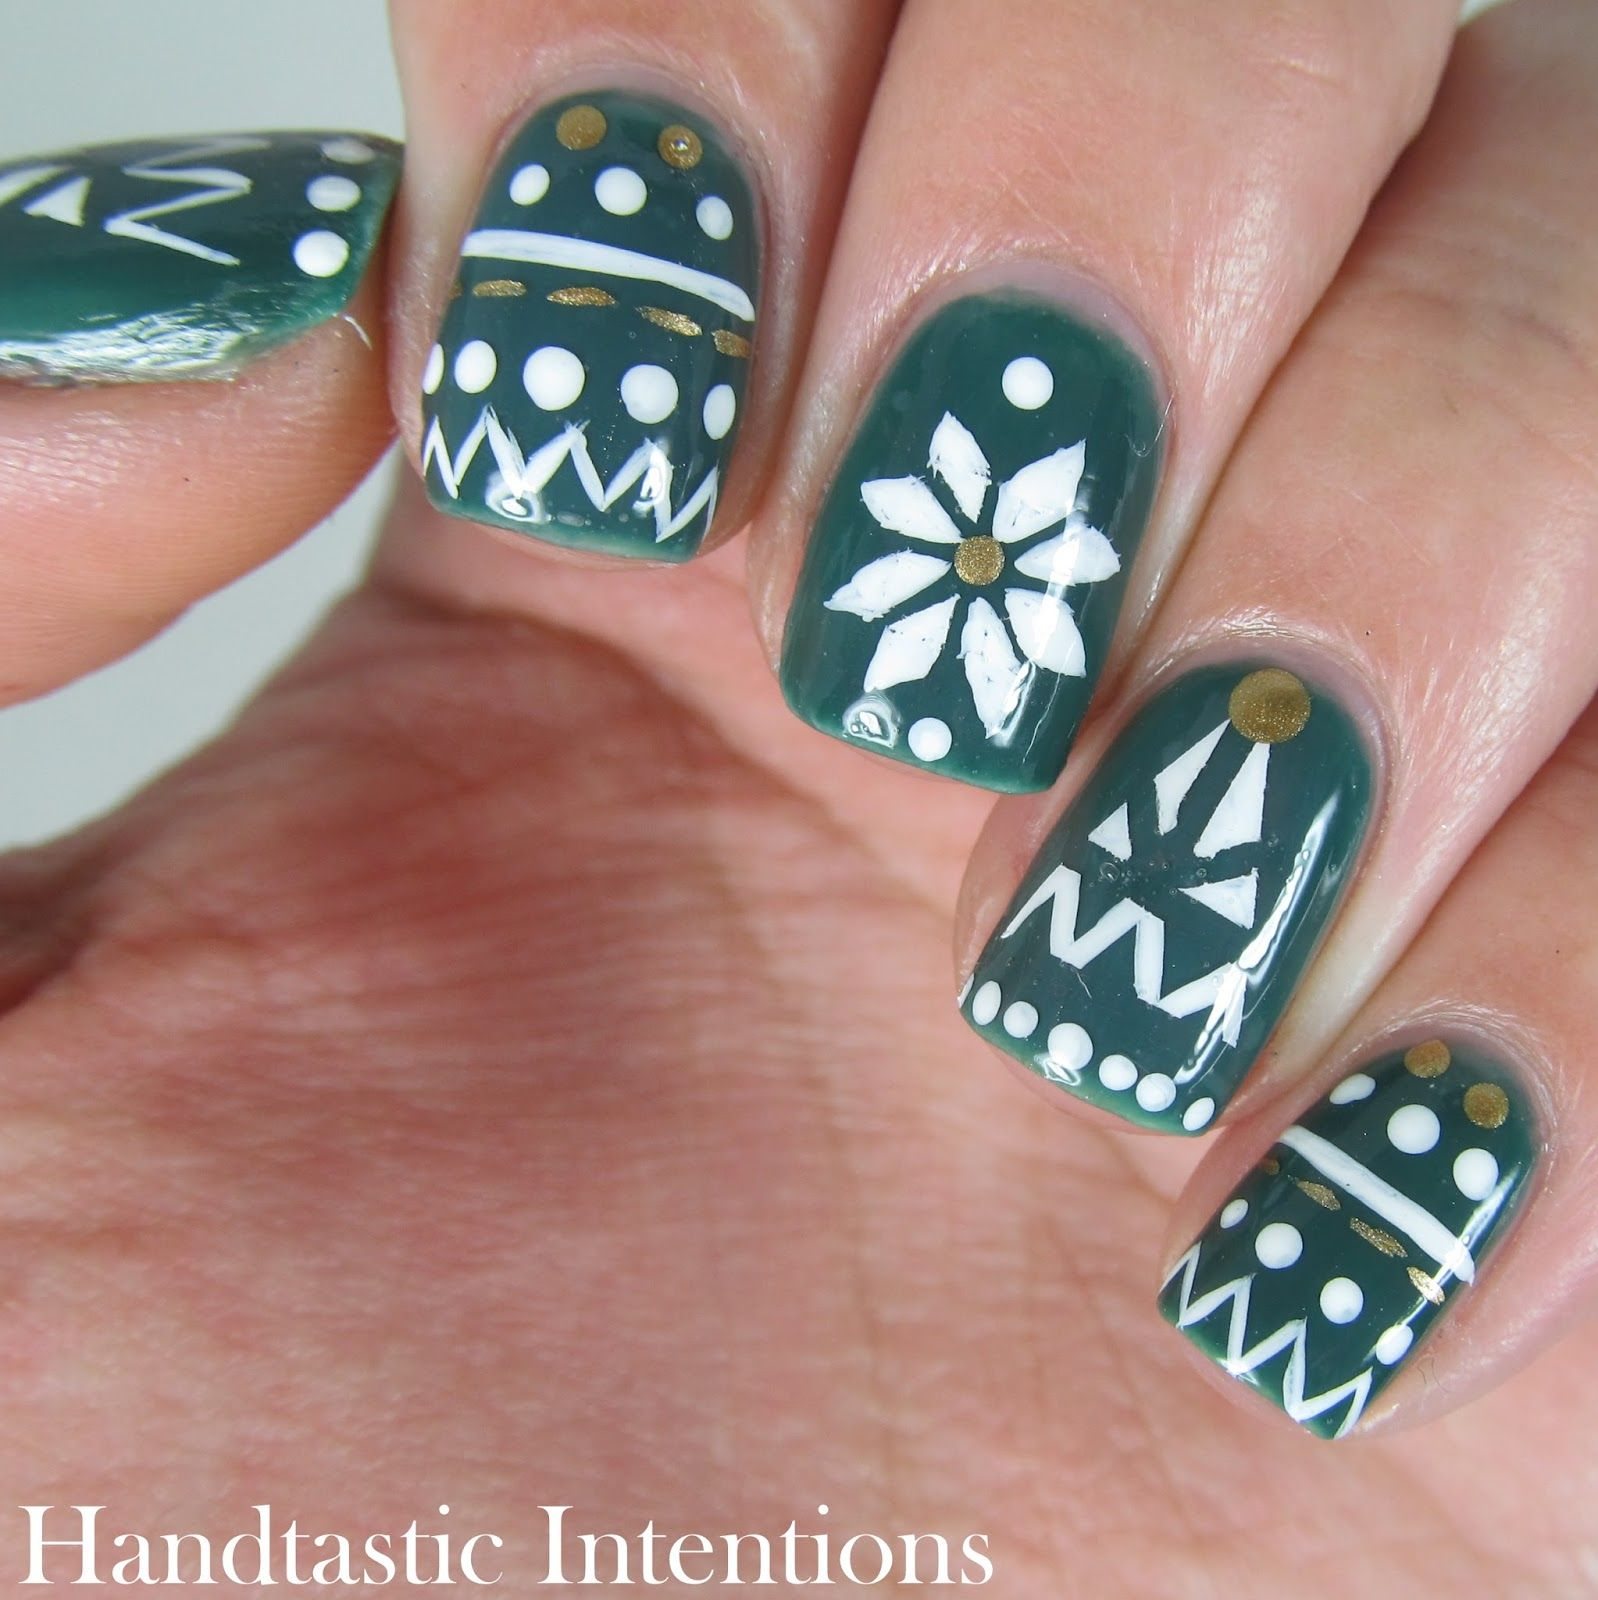 Handtastic Intentions: Christmas Tree Nail Art Ugly Sweater Fair ...